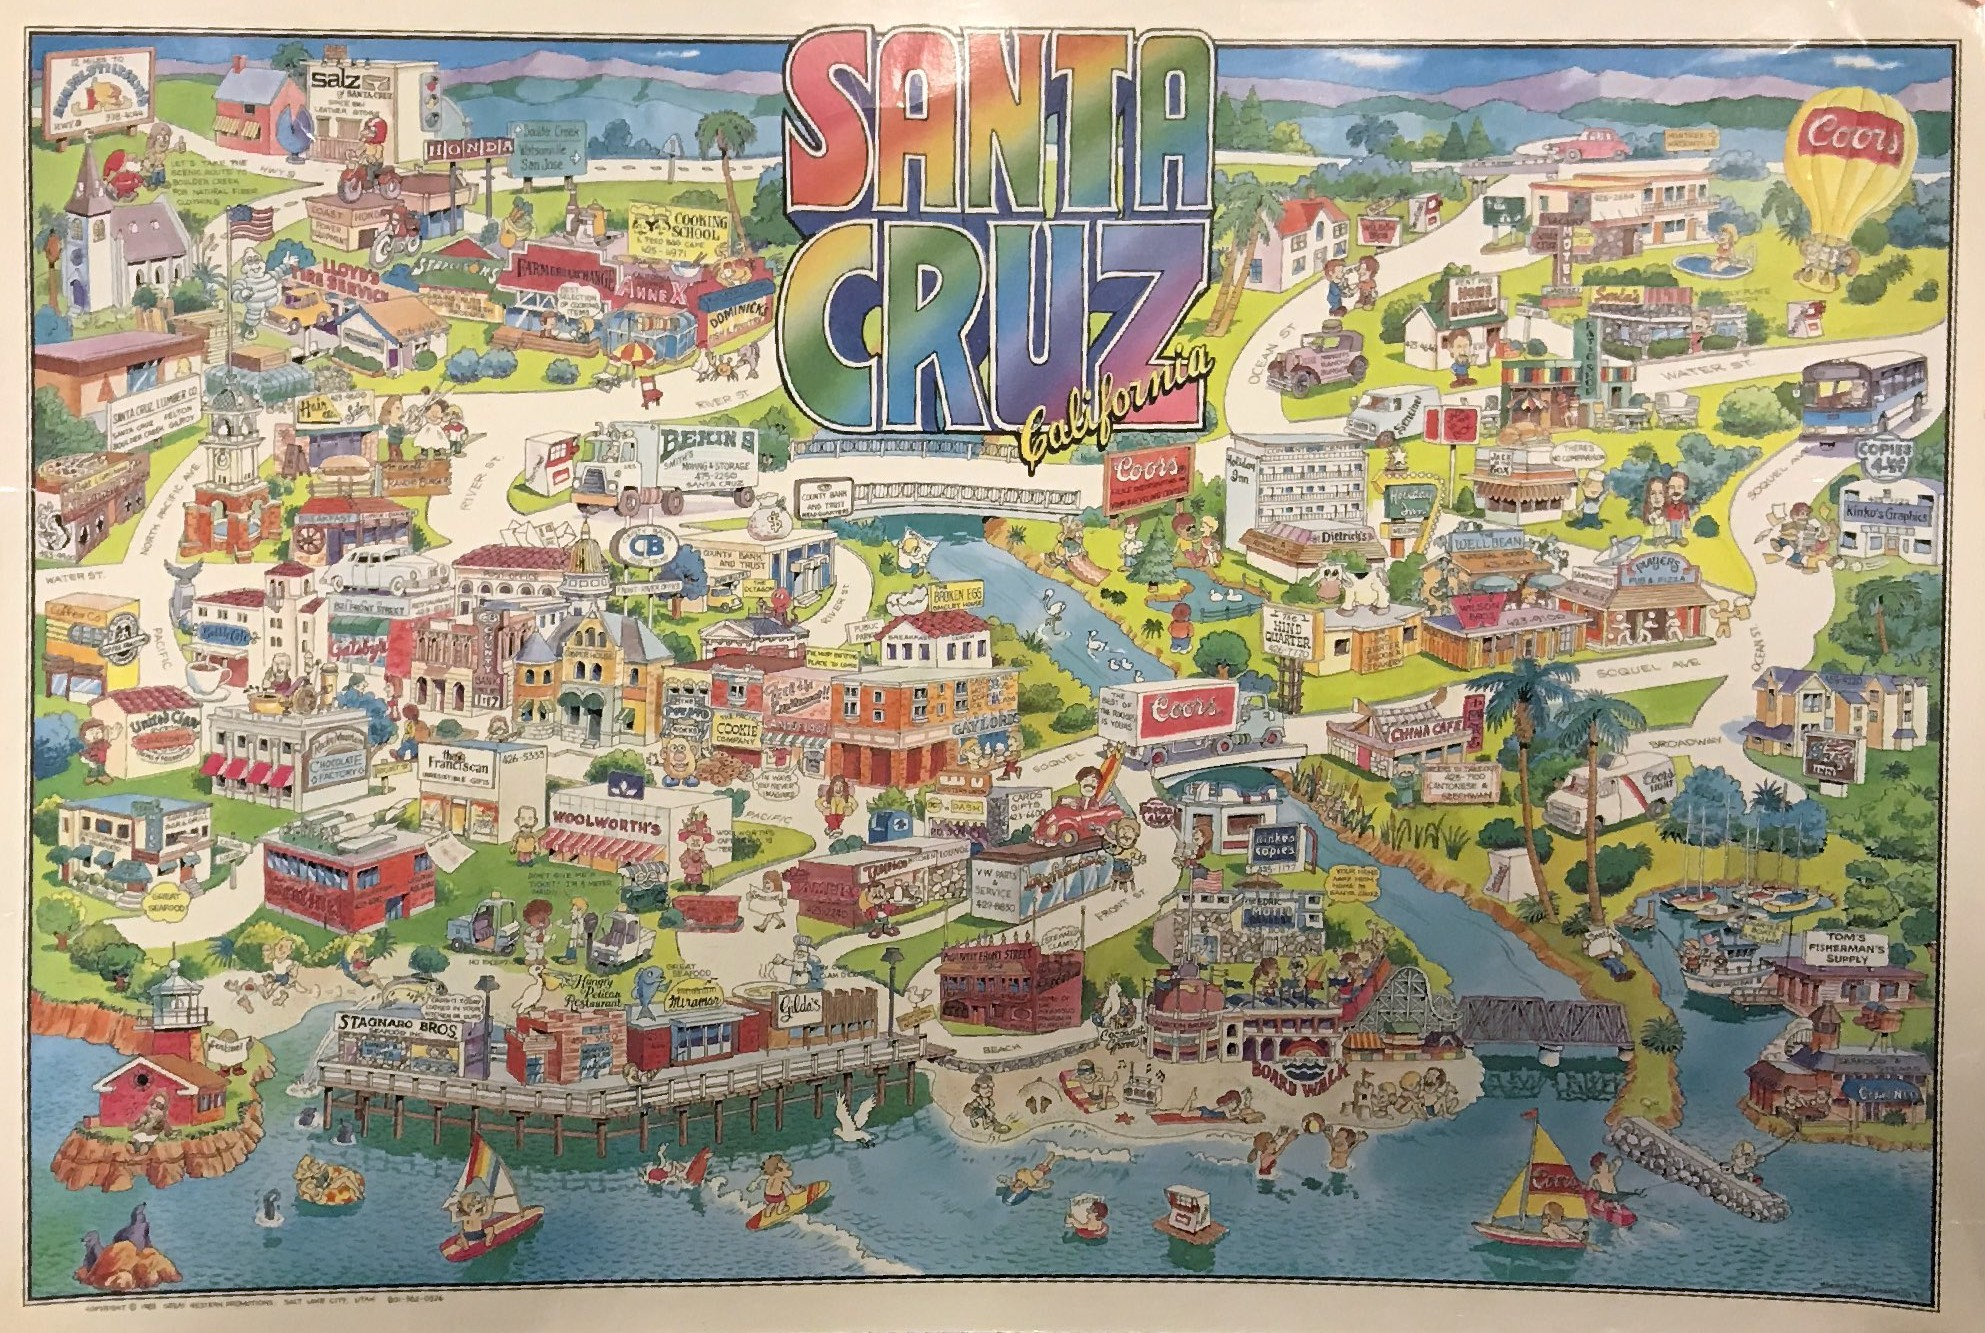 Santa Cruz in the 80s | Local Santa Cruz